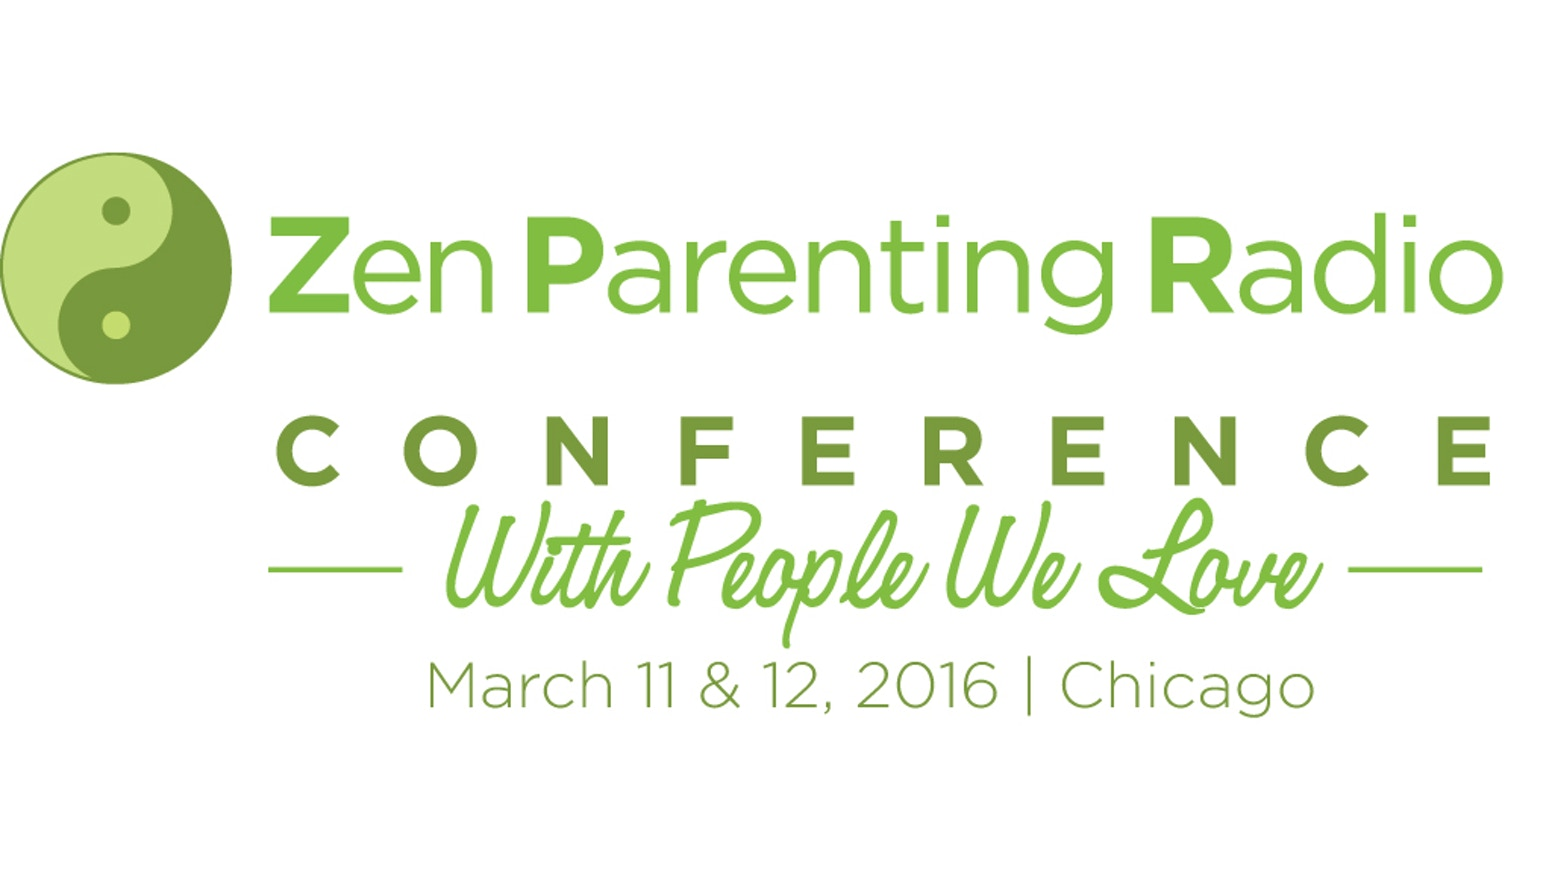 A two-day parenting event designed to inspire greater self-awareness, connection and community.